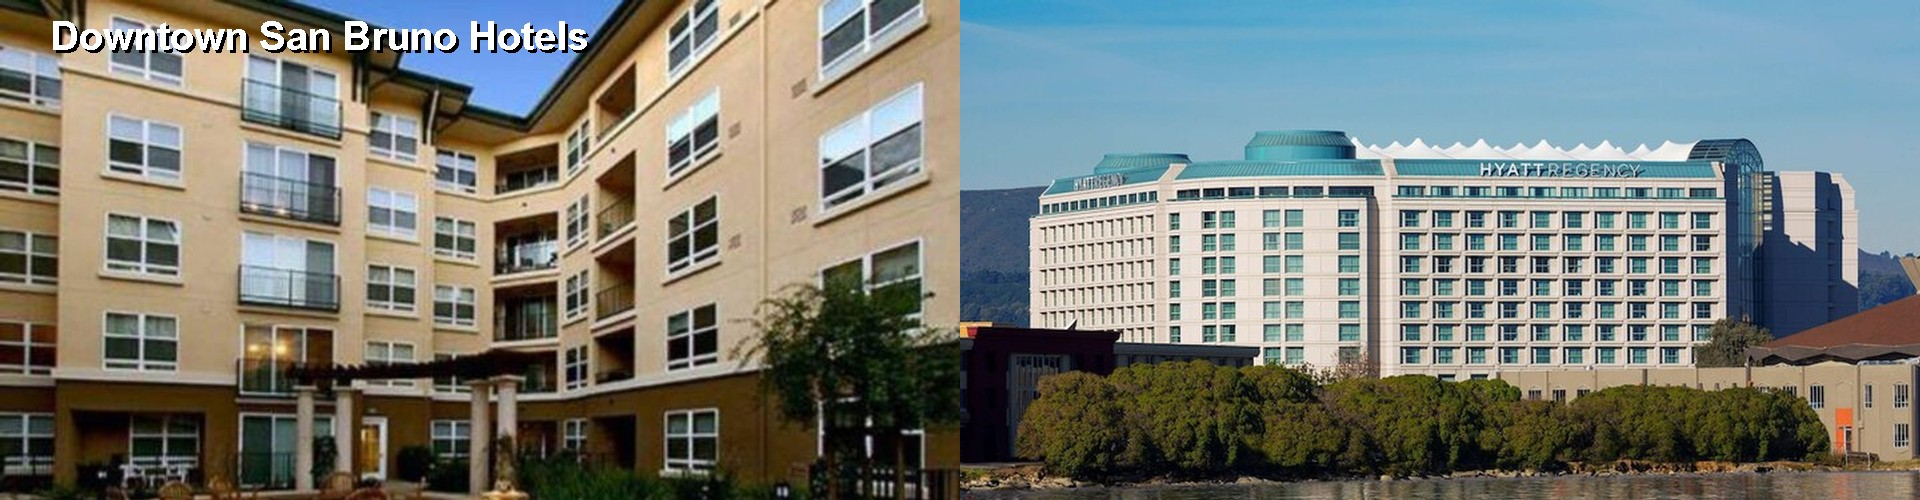 5 Best Hotels near Downtown San Bruno